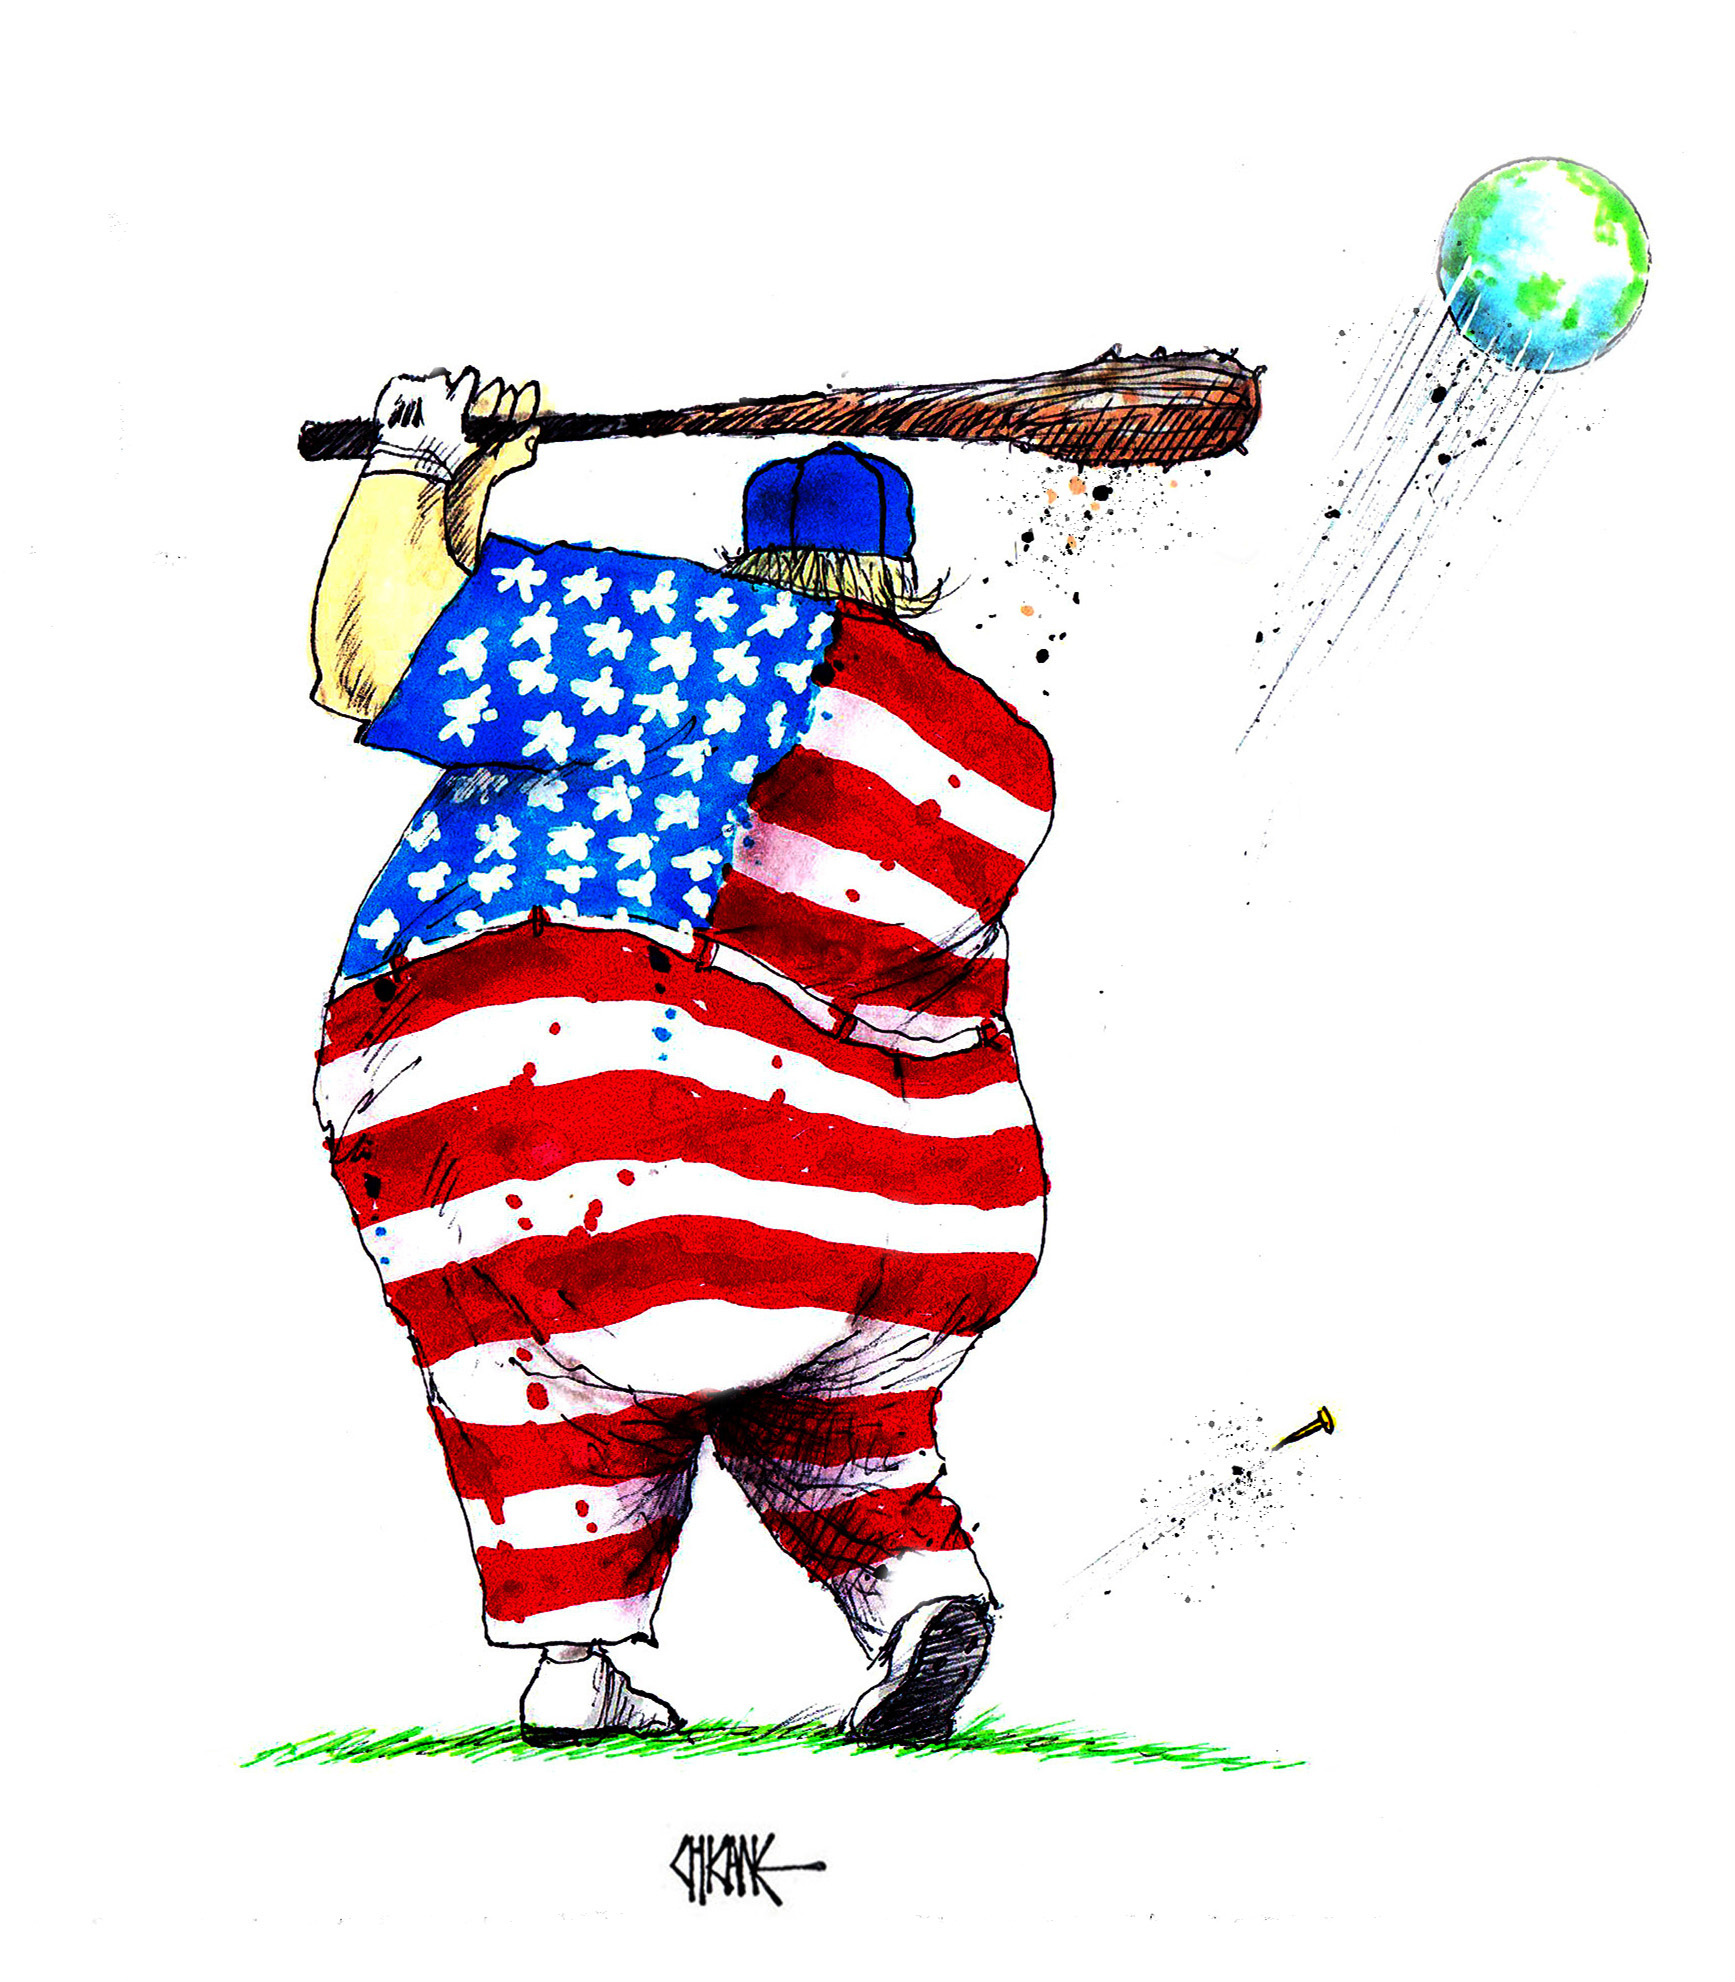 Donald Trump playing golf with a club and the plant earth as a ball. Cartoon by Chicane